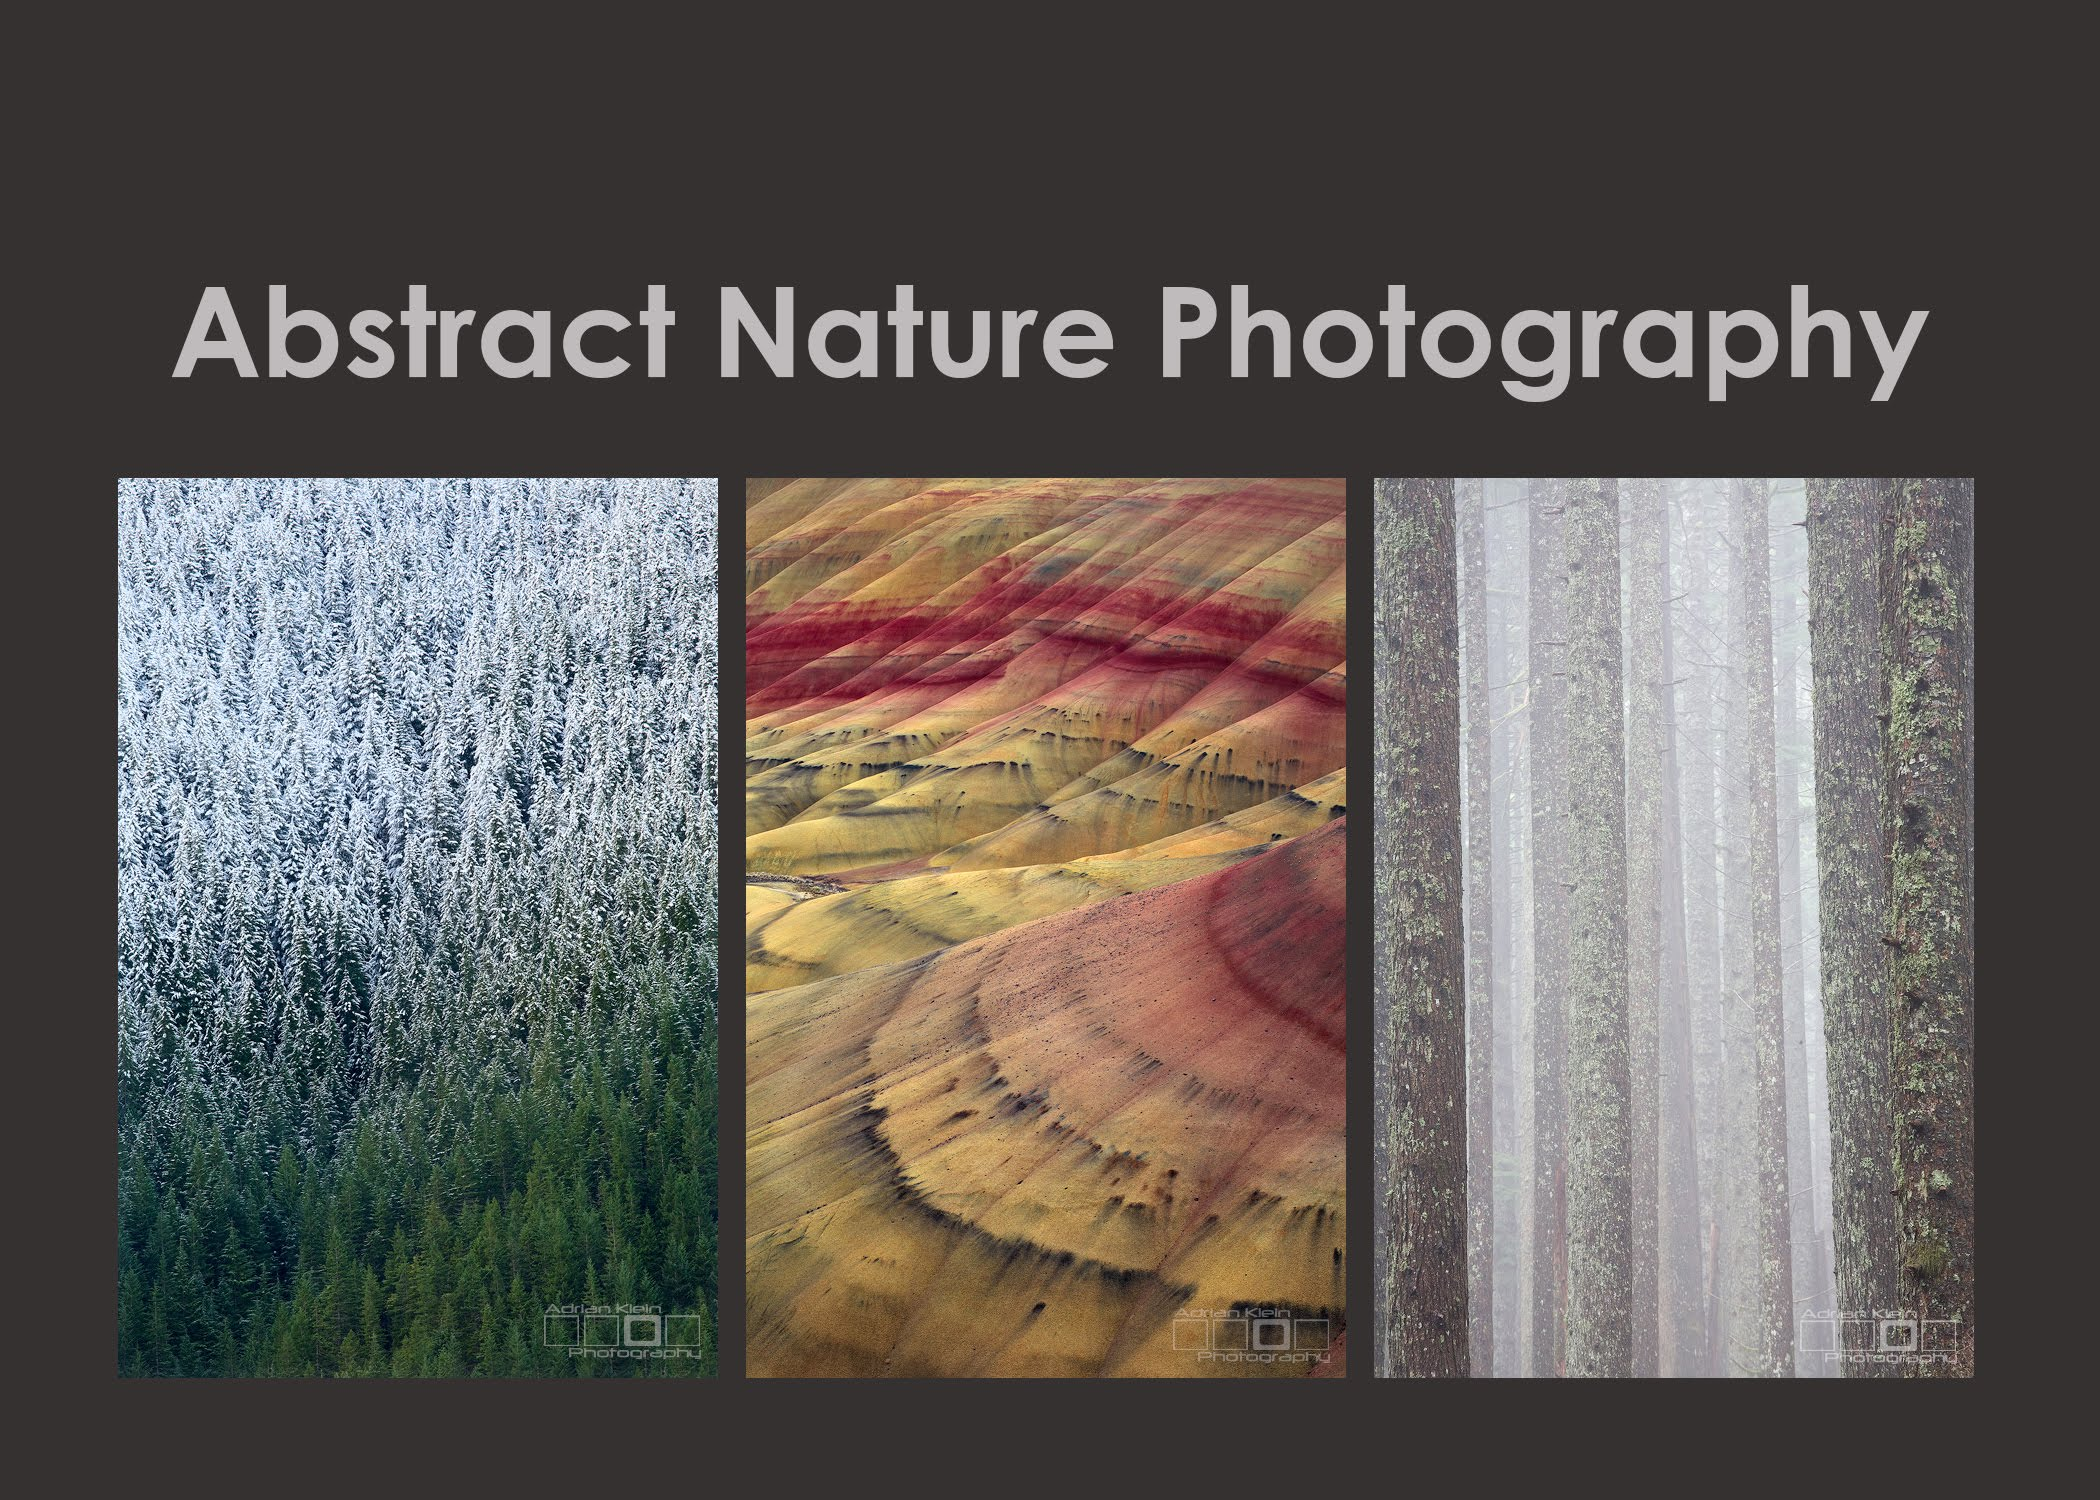 Abstract Nature Photography Revisited